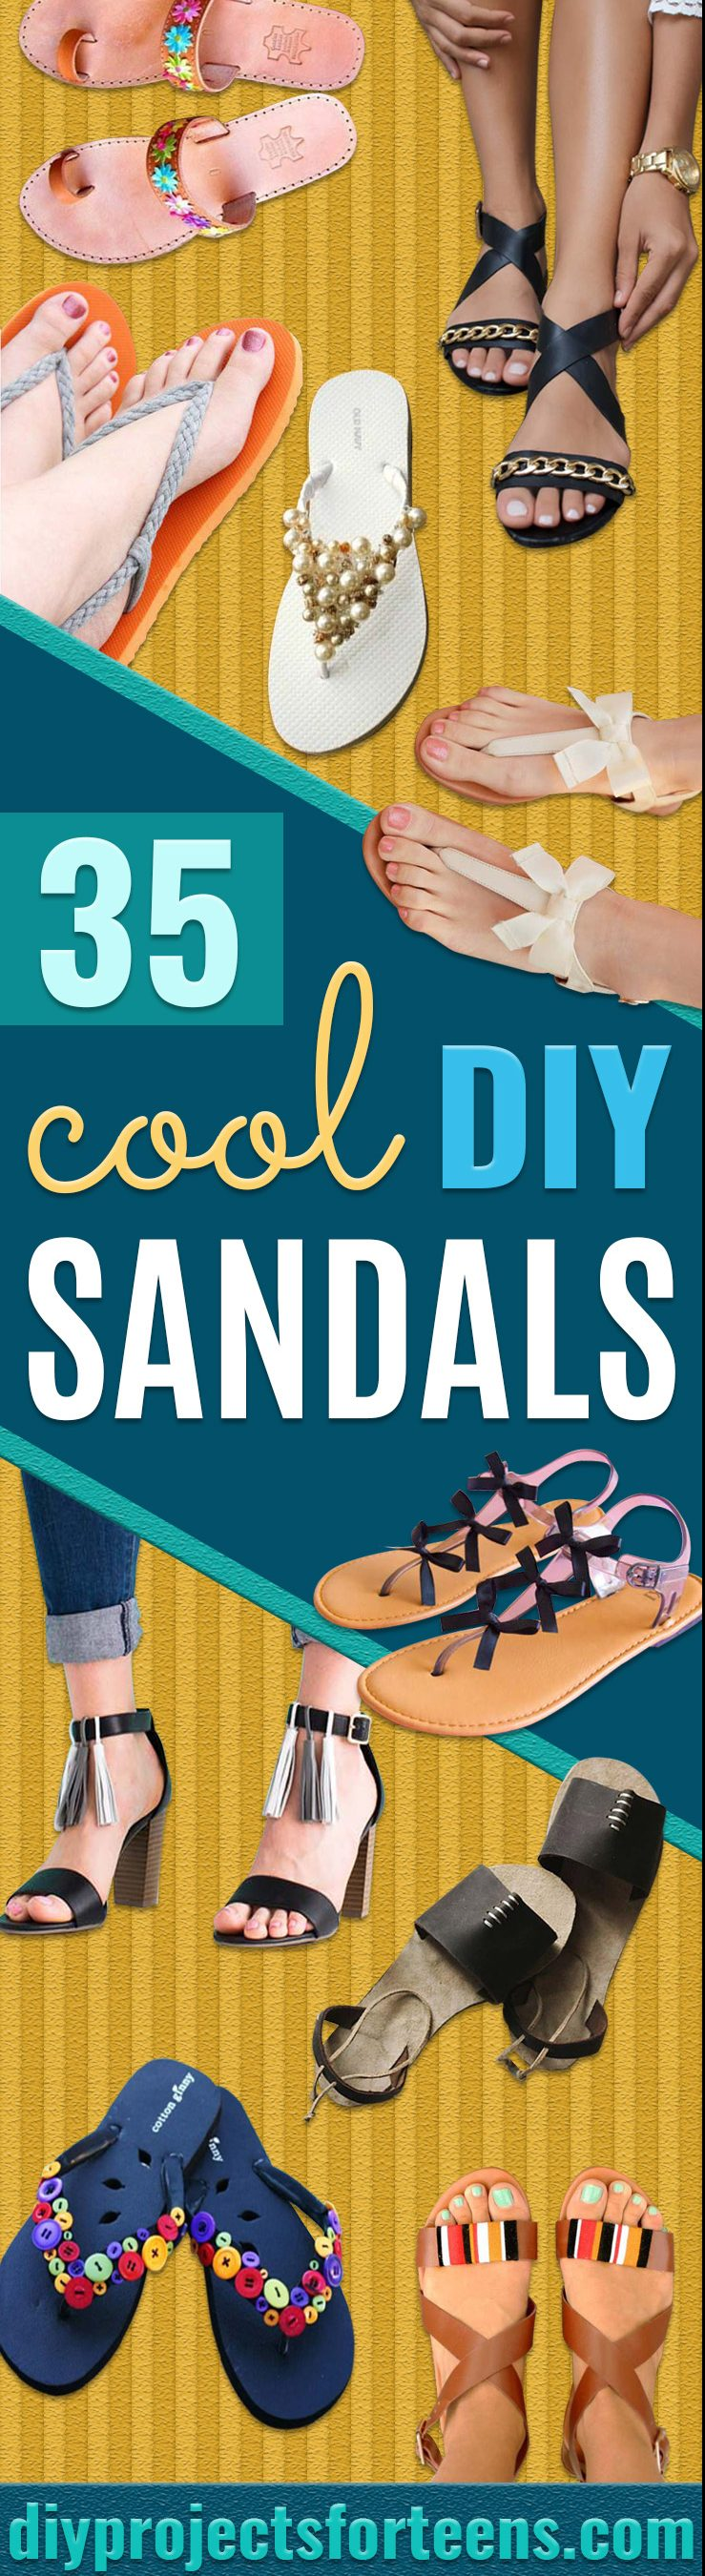 DIY Sandals and Flip Flops - Simple Yet Chic DIY Shoes - Creative, Cool and Easy Ways to Make or Update Your Shoes - Decorate Flip Flops with Cheap Dollar Store Crafts and Ideas - Beaded, Leather, Strappy and Painted Sandal Projects - Fun DIY Projects and Crafts for Teens and Teenagers